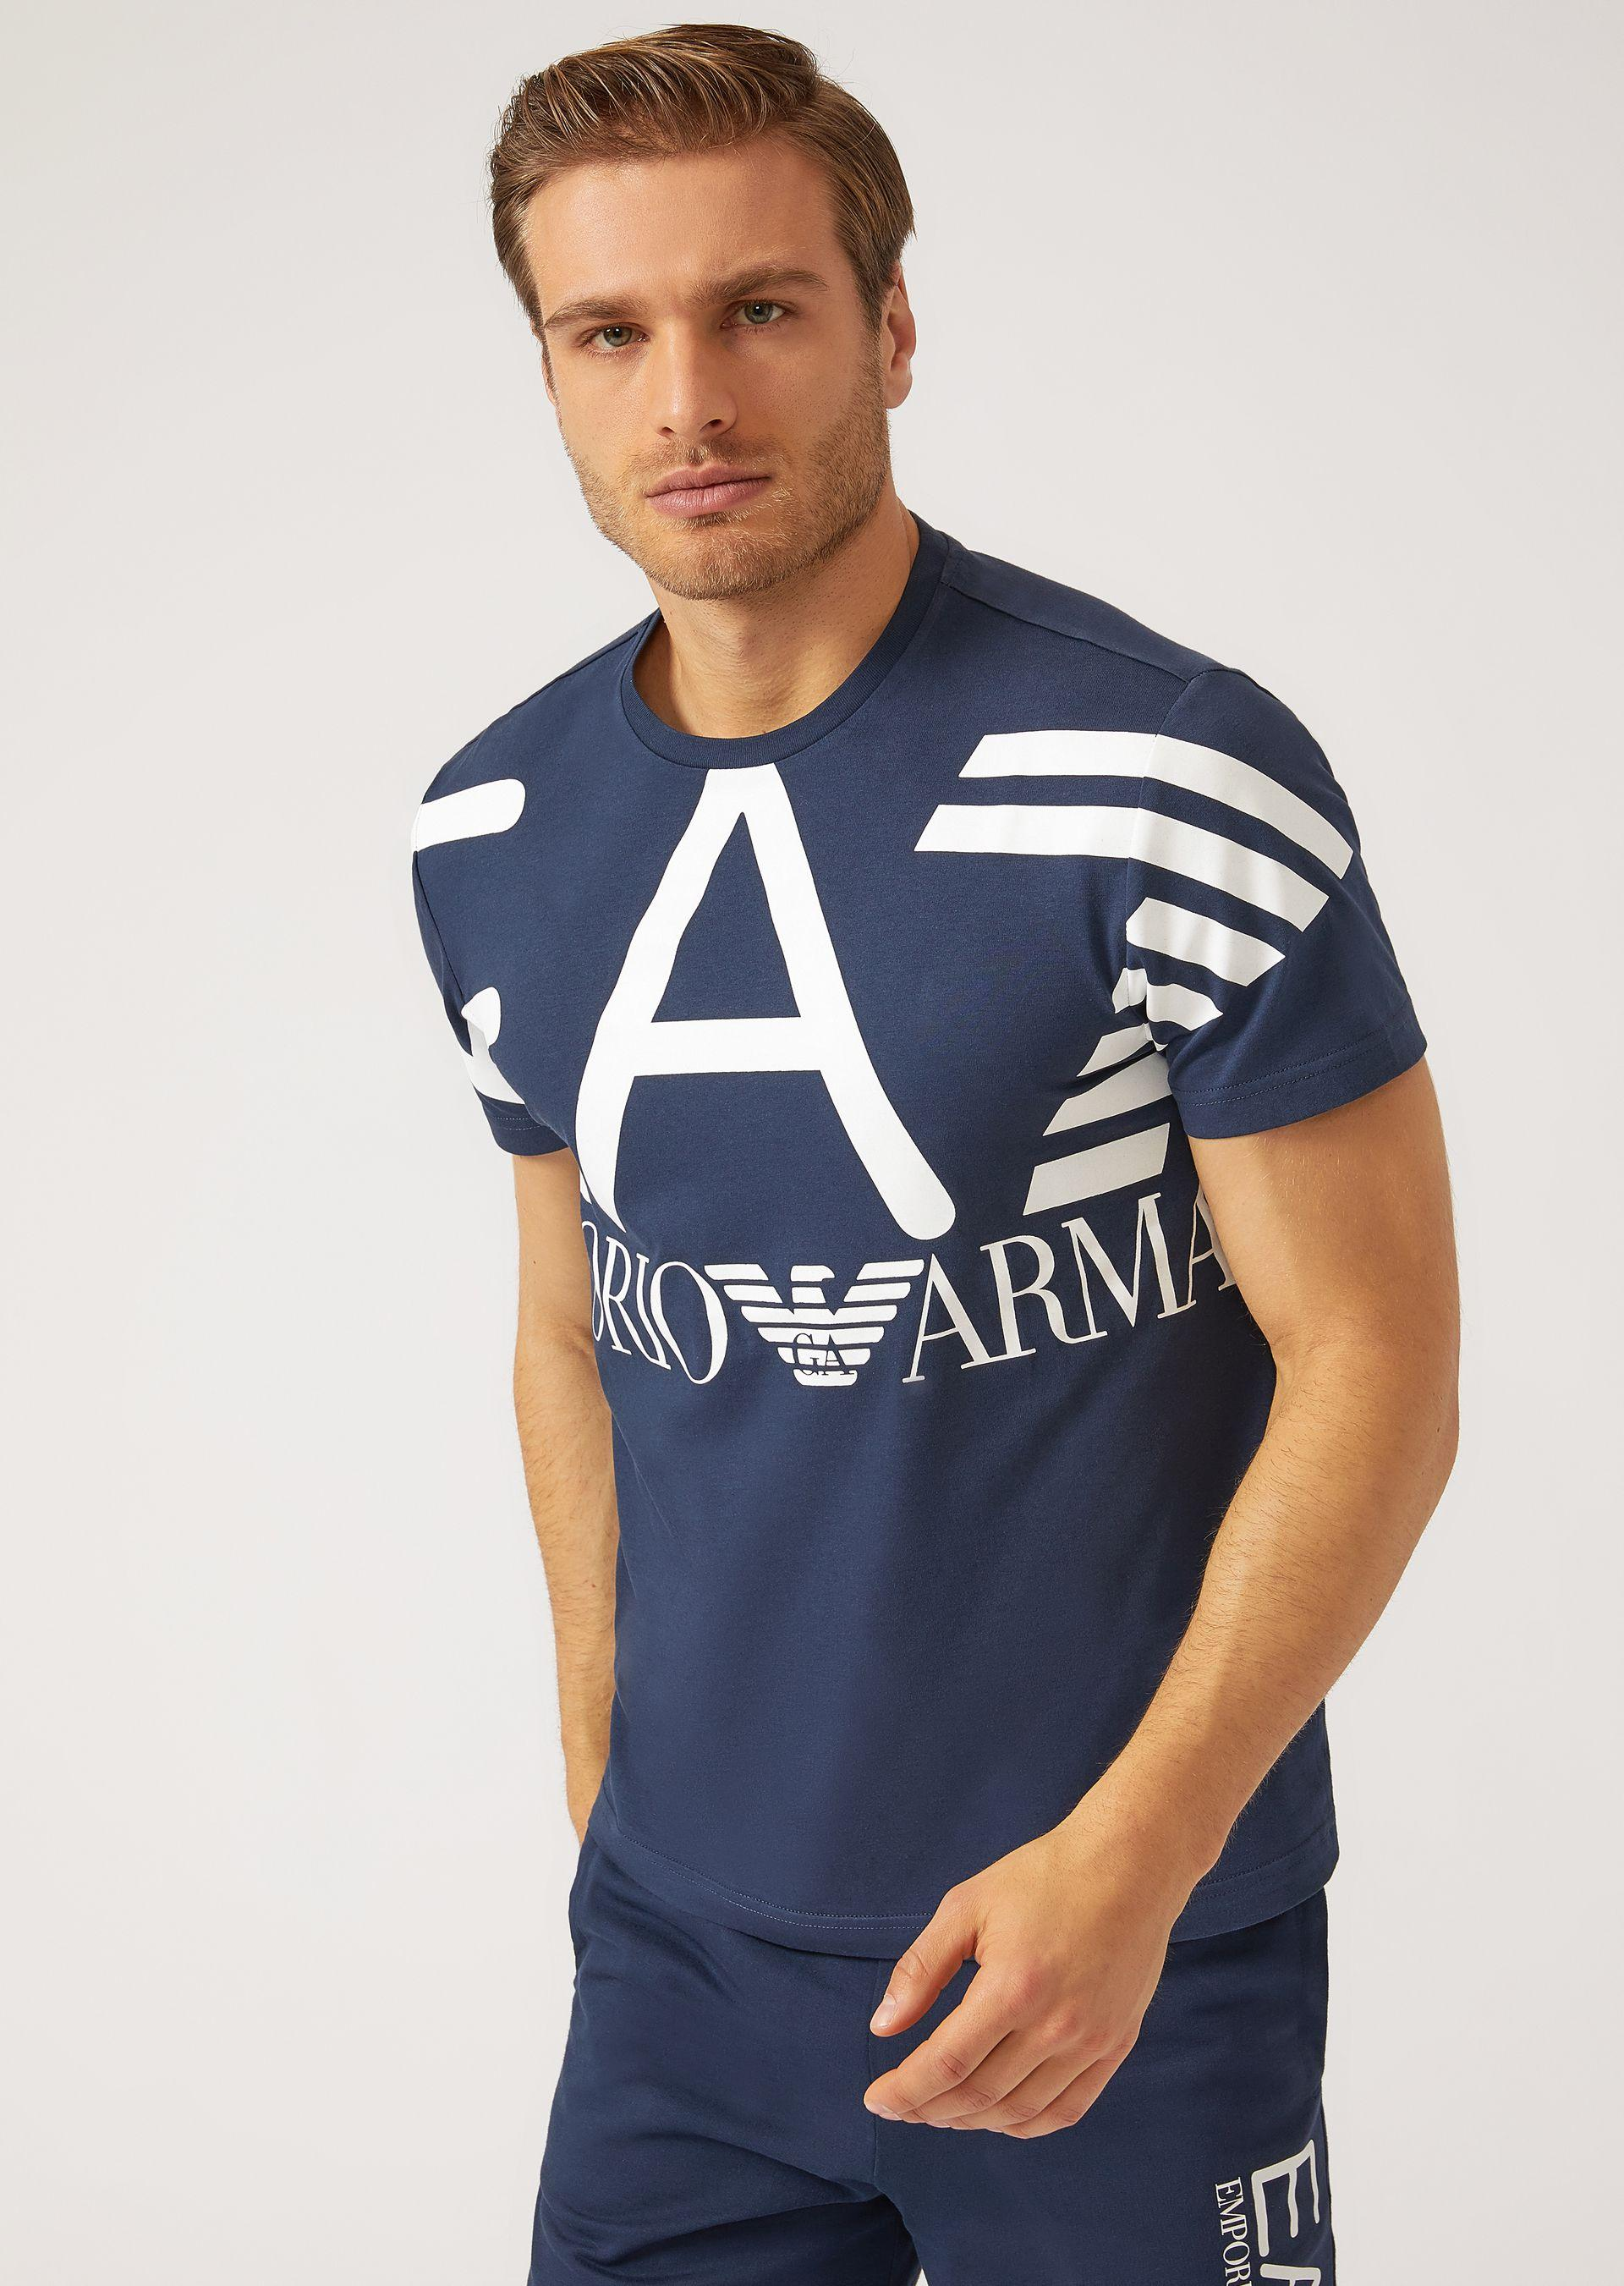 Emporio Armani T-shirts - Item 12134944 In Navy Blue ; Black ; White